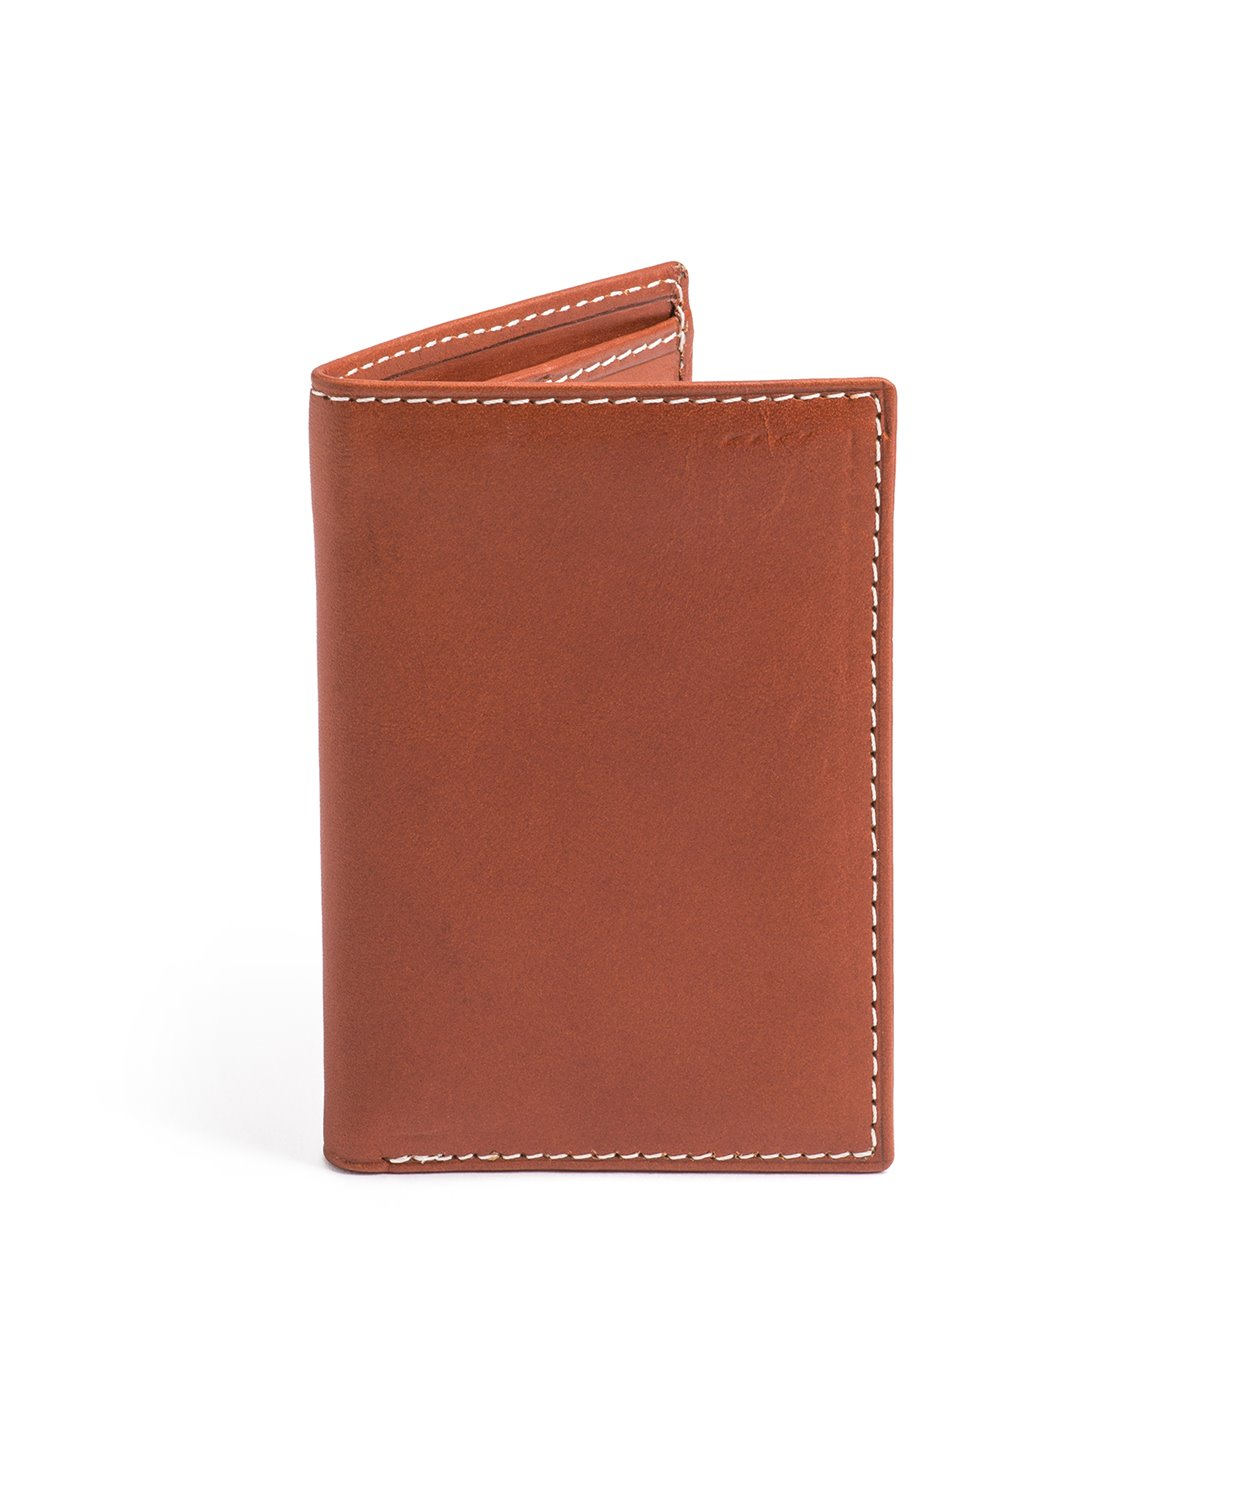 Palmgrens - Plånbok 71 Cognac - Genuine handcrafted leather since 1896 8d21a9b0b2d29